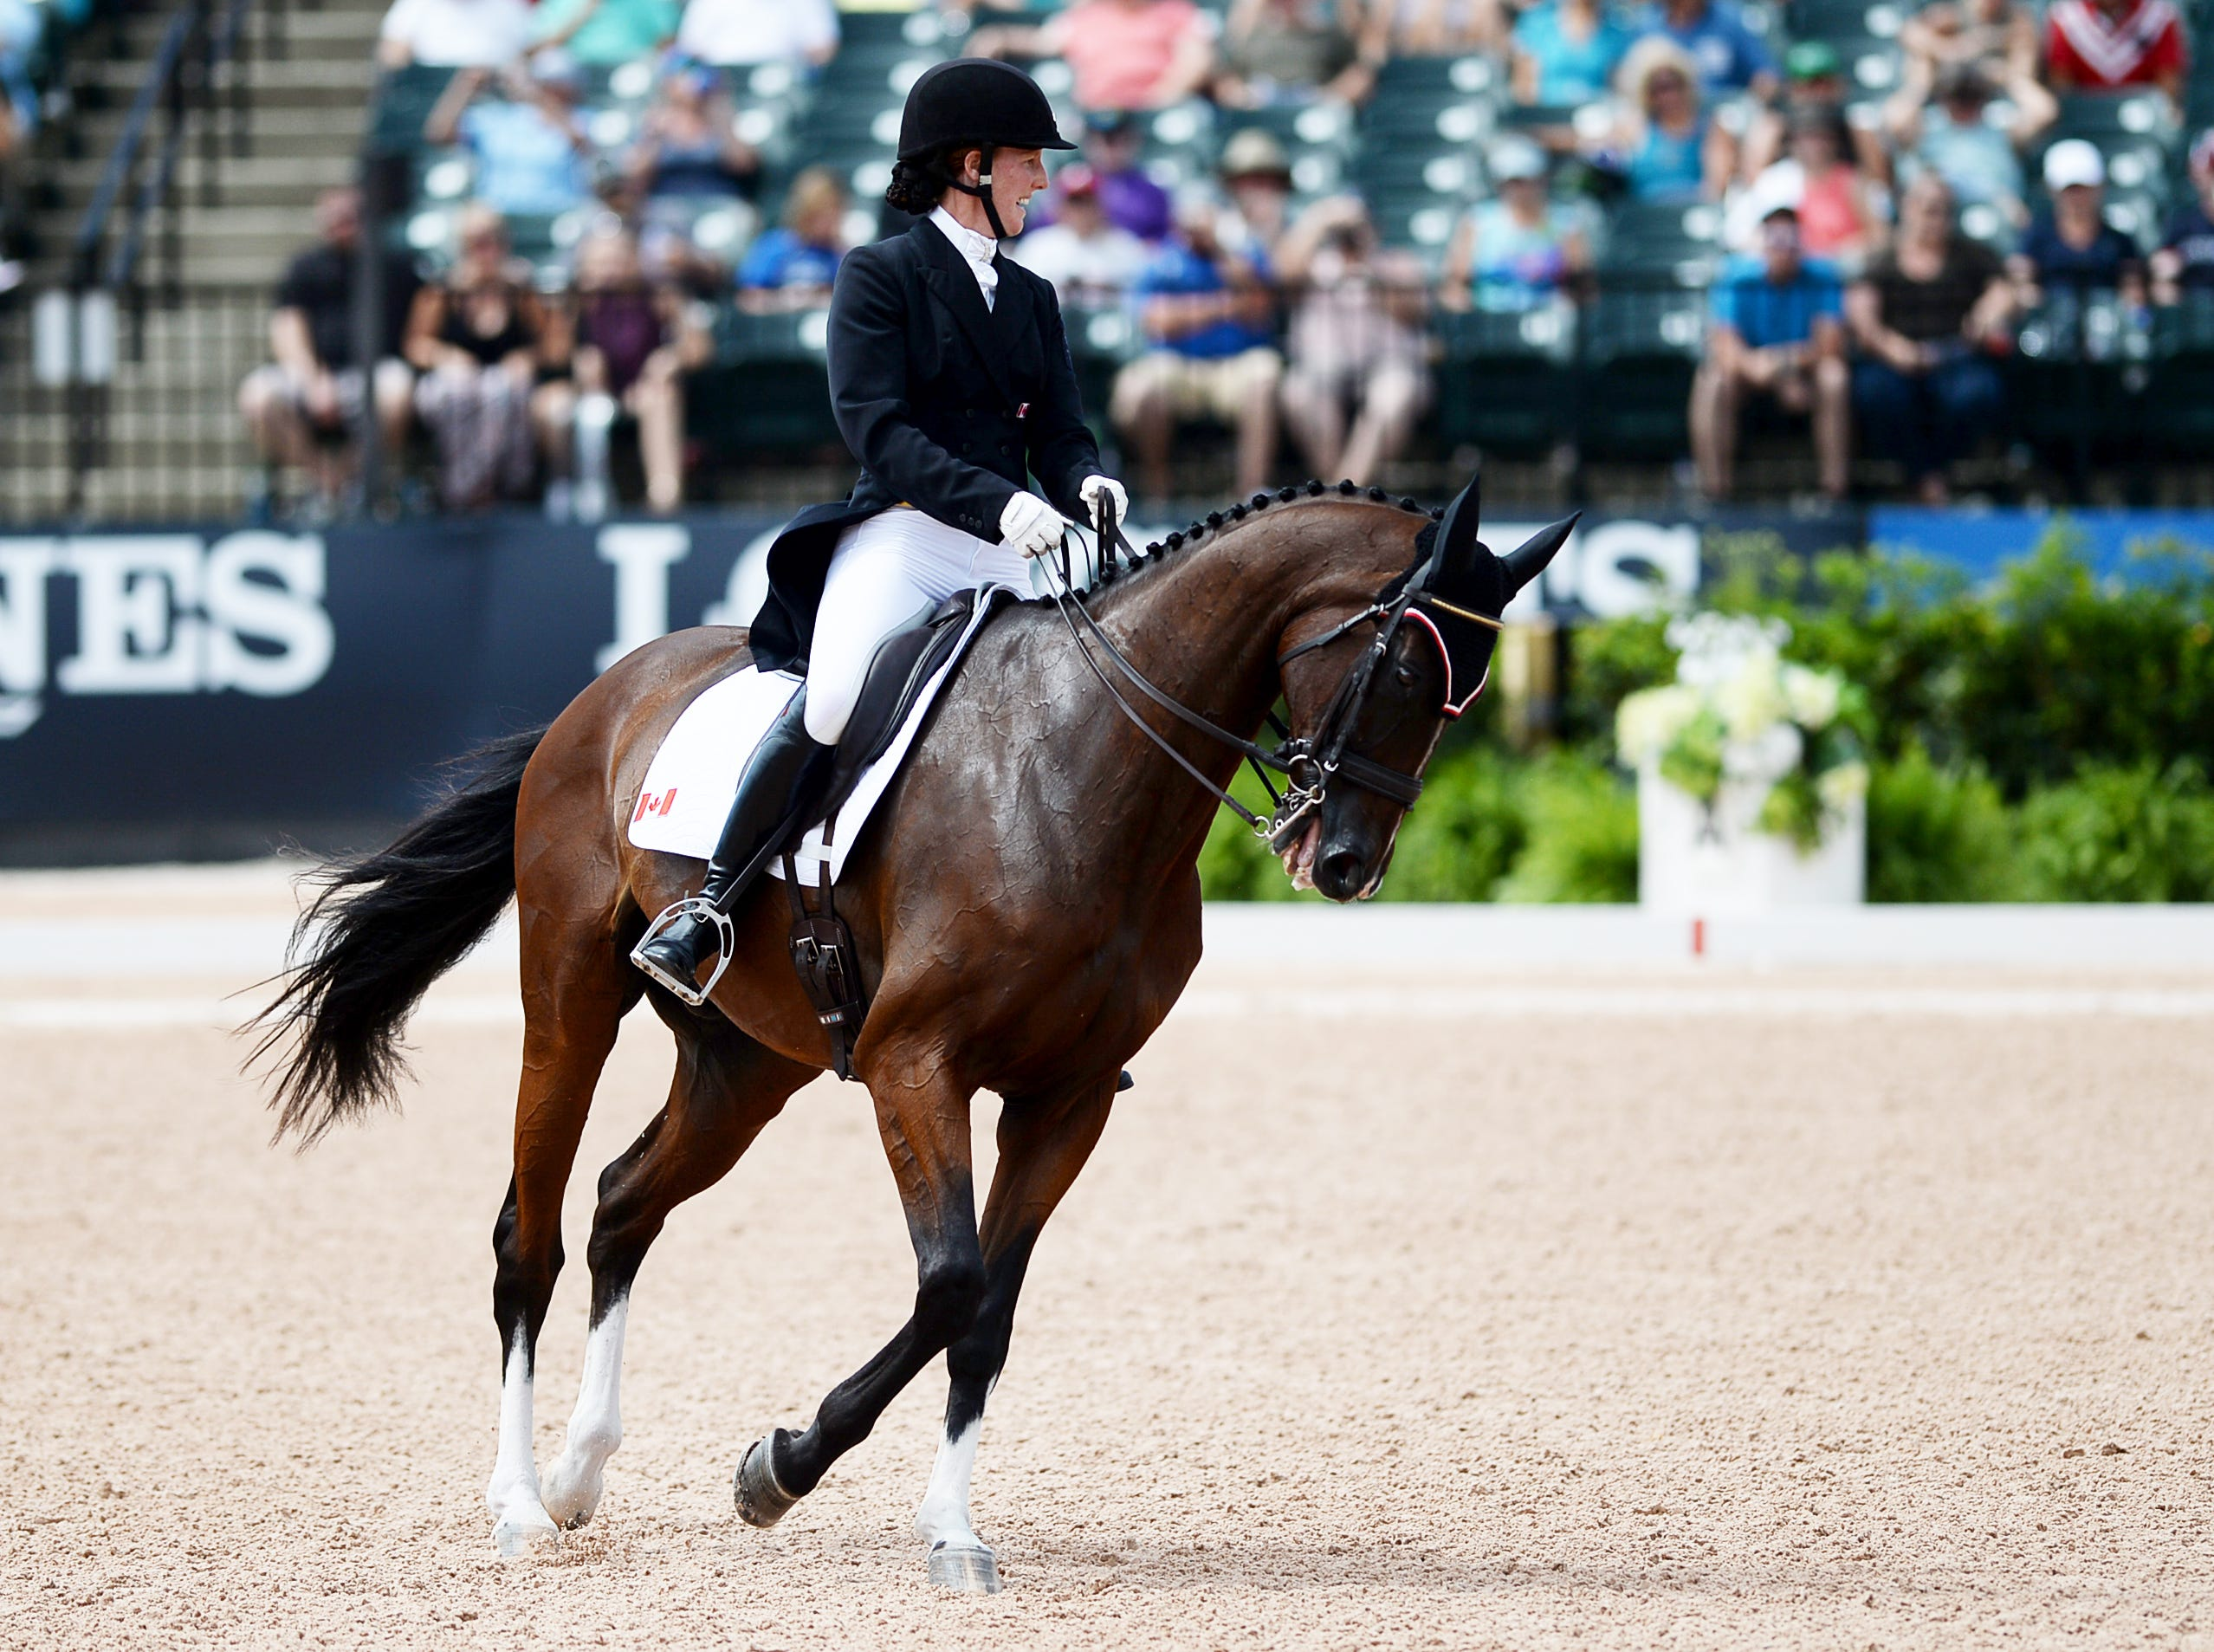 Canada's Selena O'Hanlon rides Foxwood High in the dressage portion of the eventing competition at the World Equestrian Games Sept. 14, 2018.